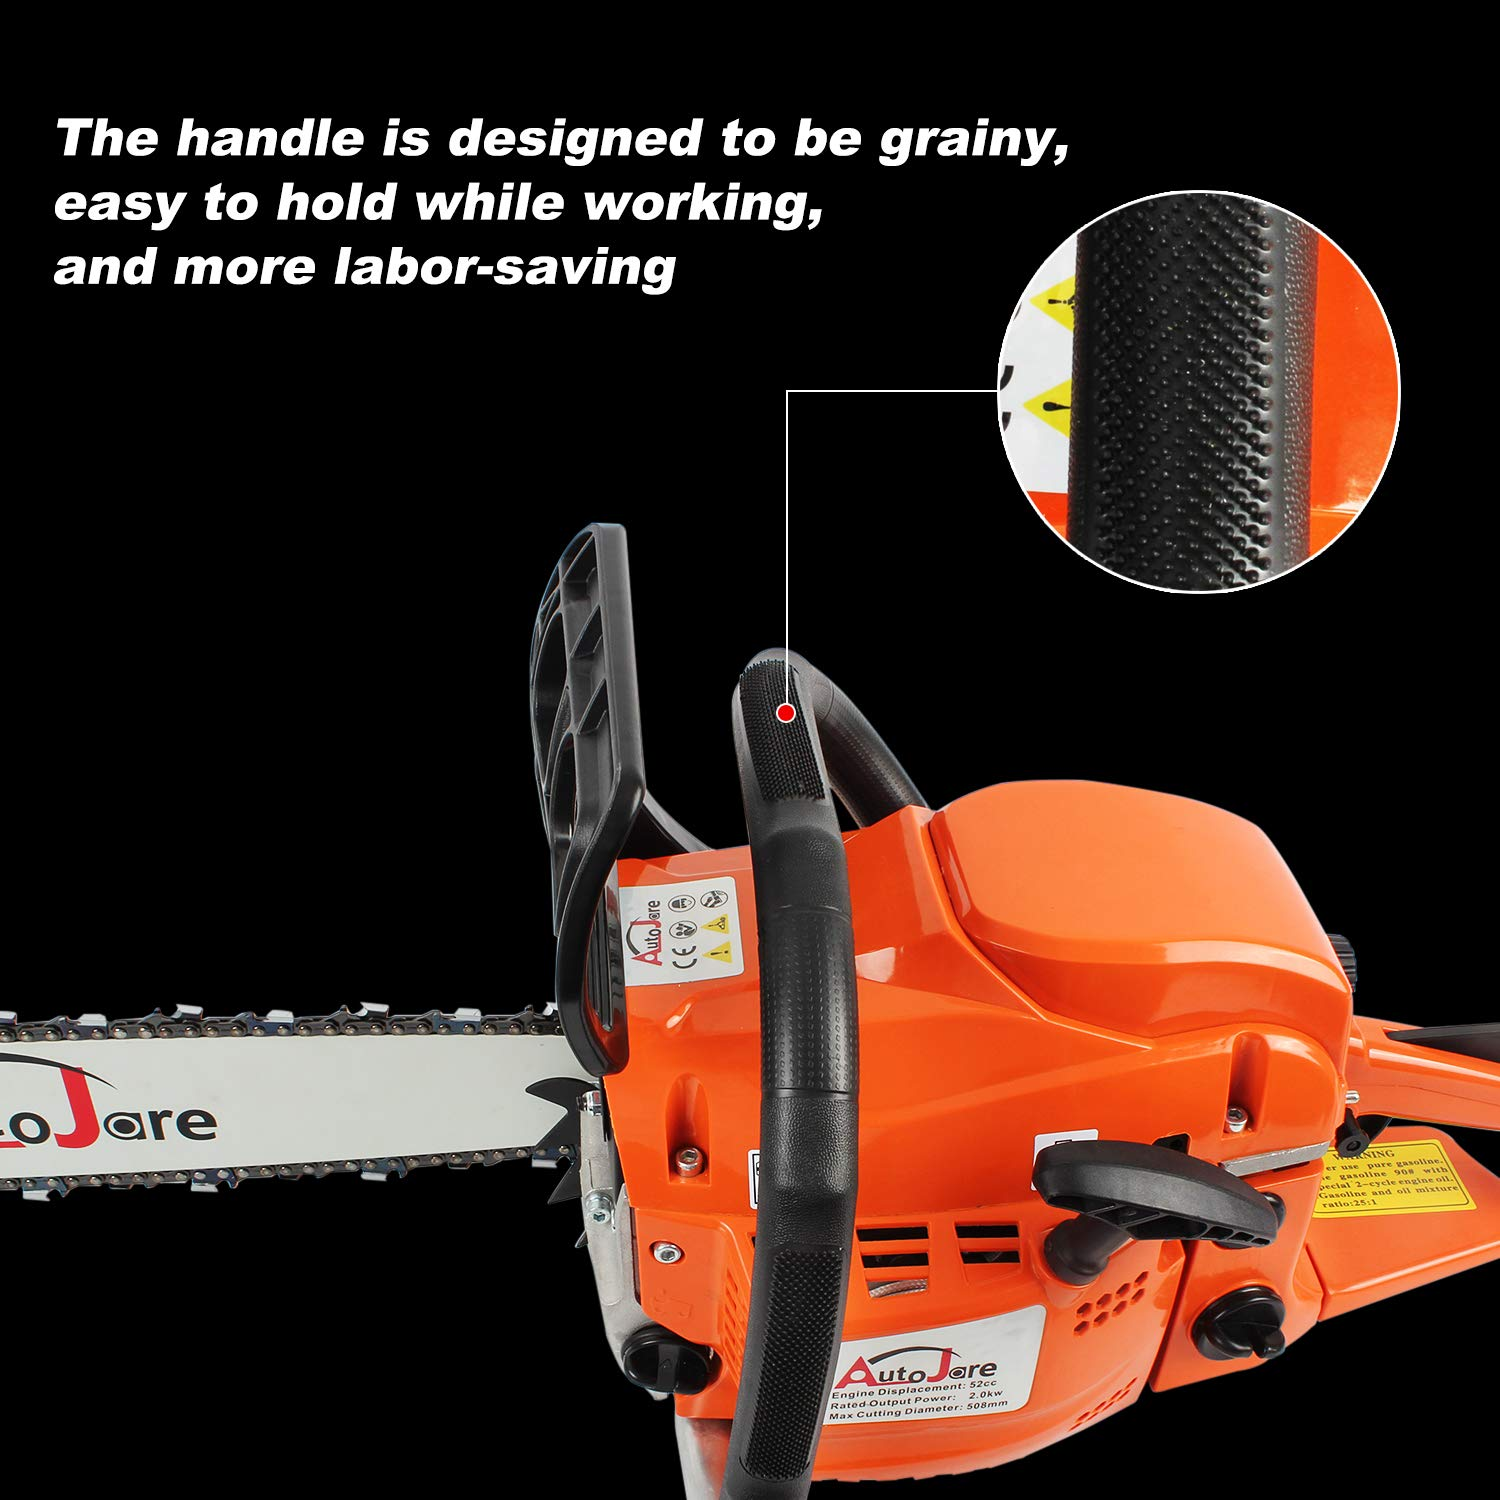 AUTOJARE YJ5202 Chainsaws product image 4